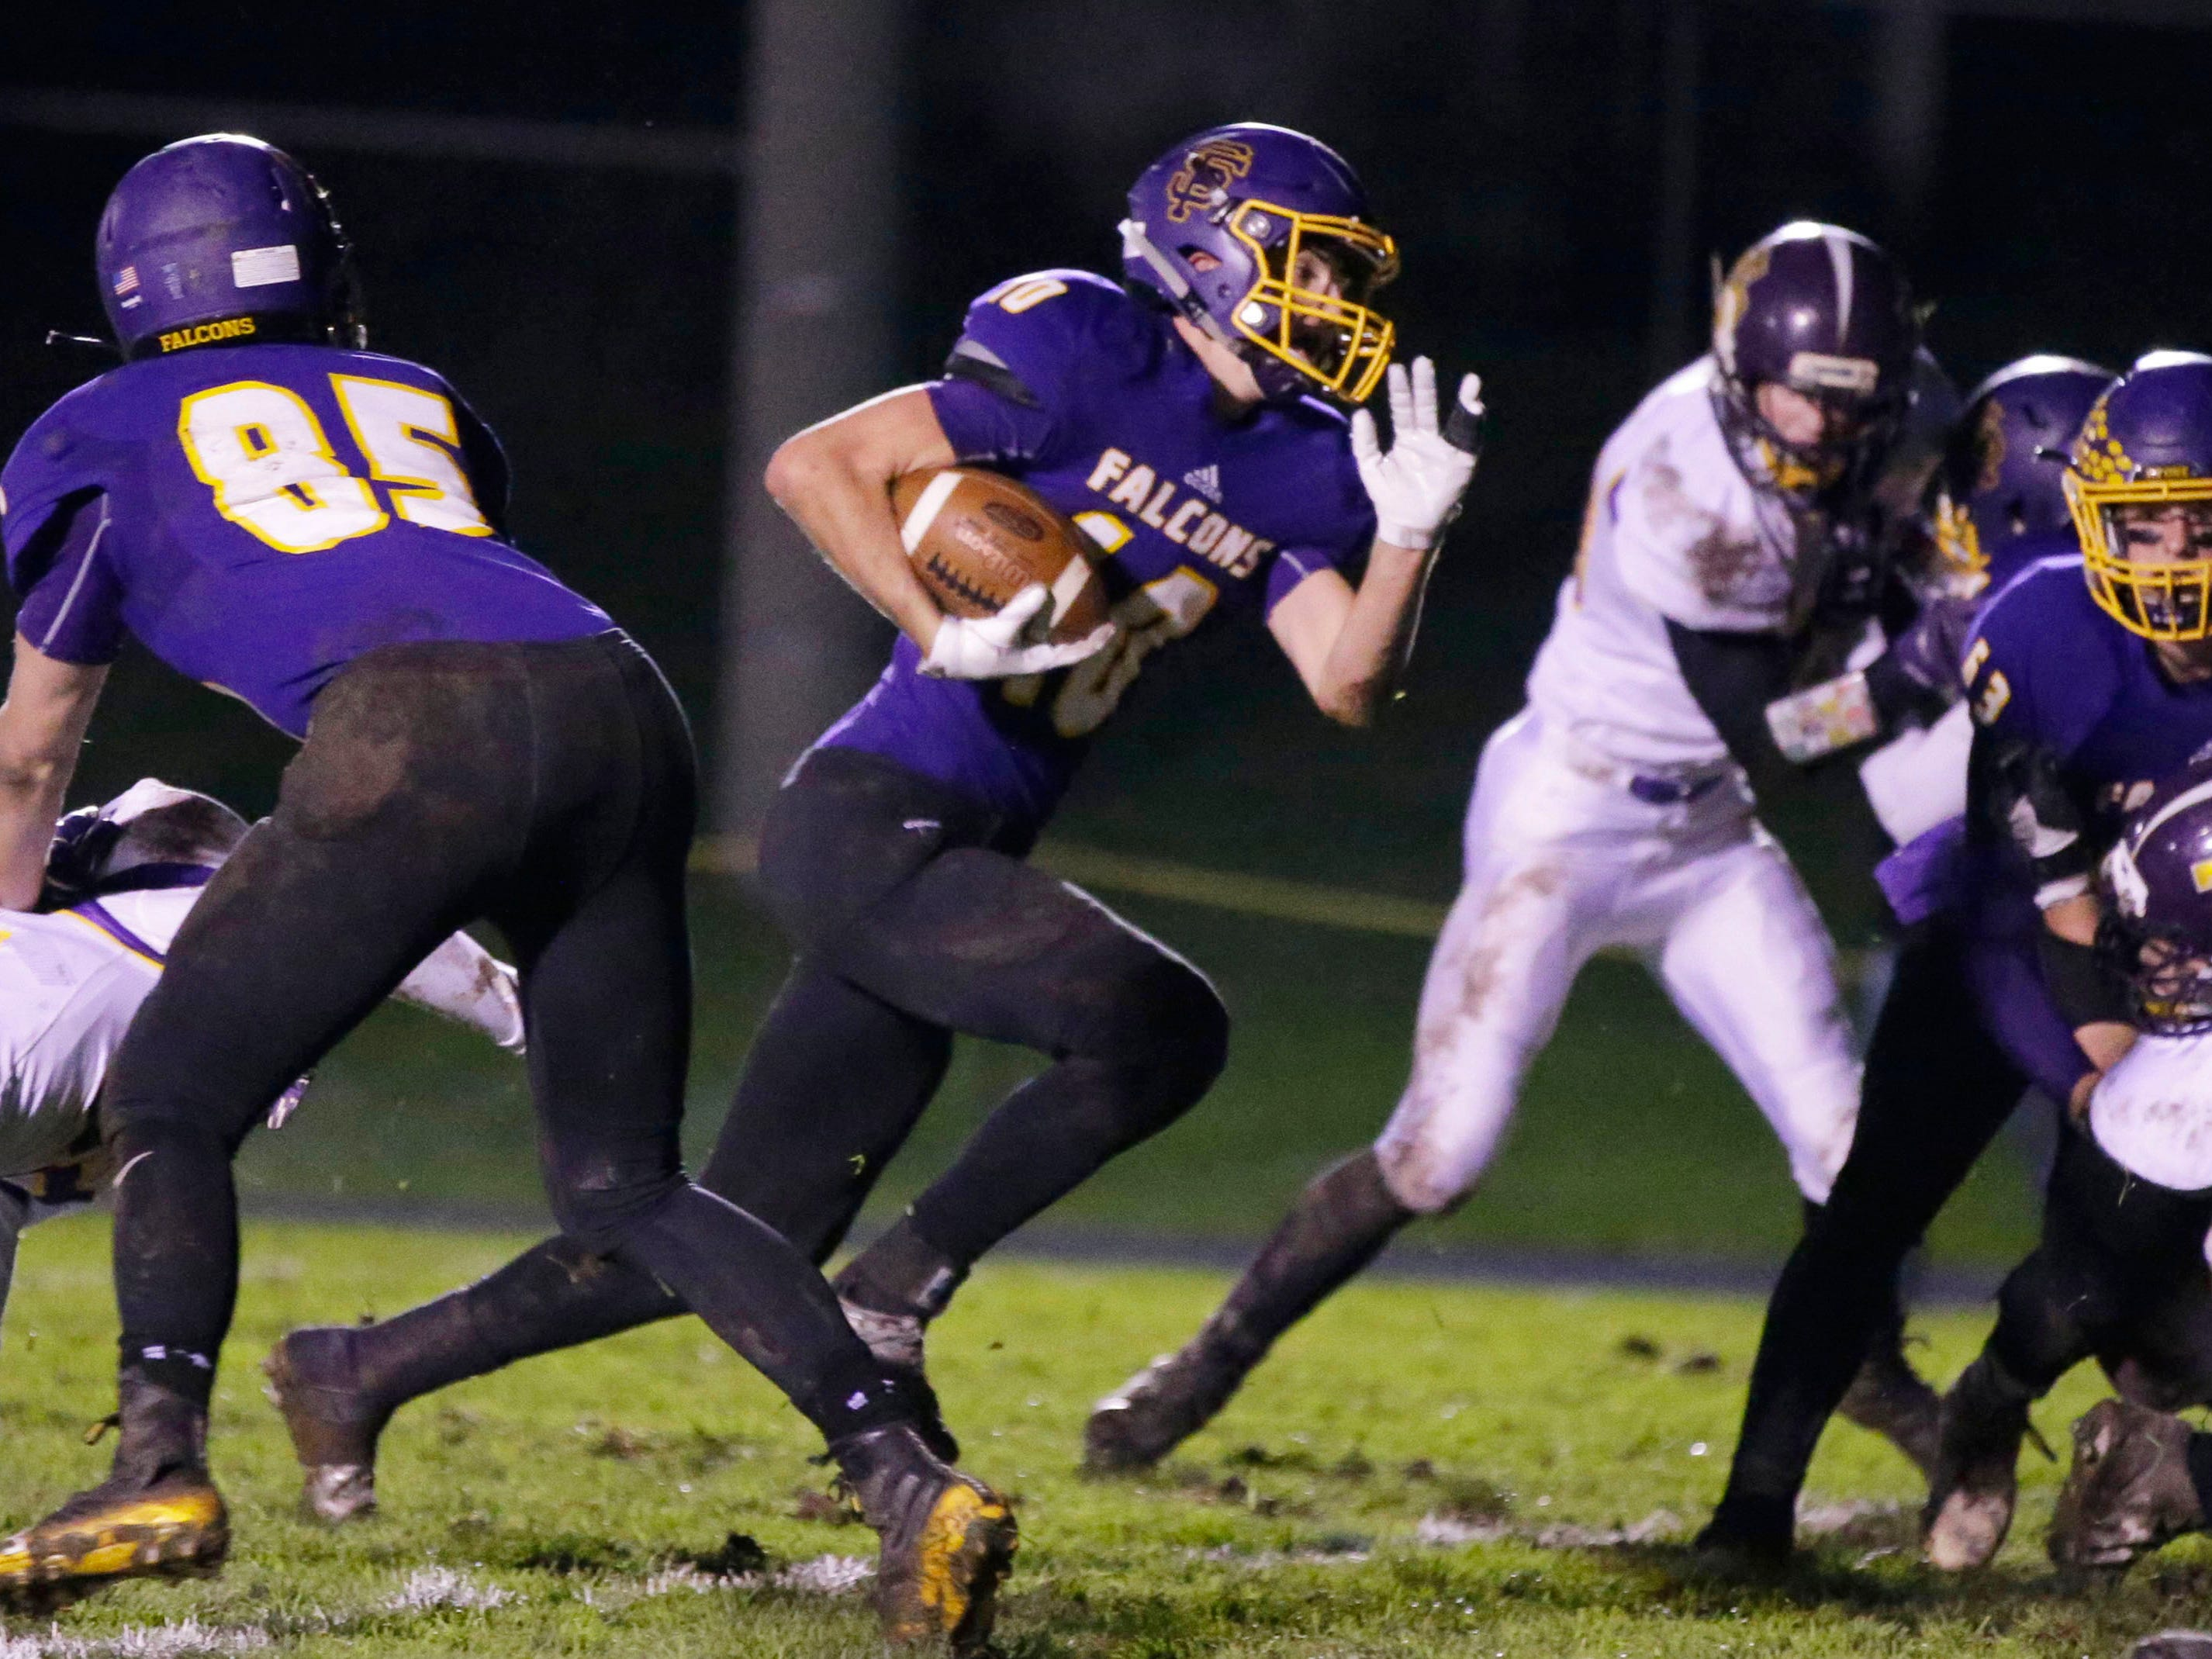 Sheboygan Falls' Justin Tenpas (10) carries the ball against Two Rivers, Friday, October 12, 2018, in Sheboygan Falls, Wis.